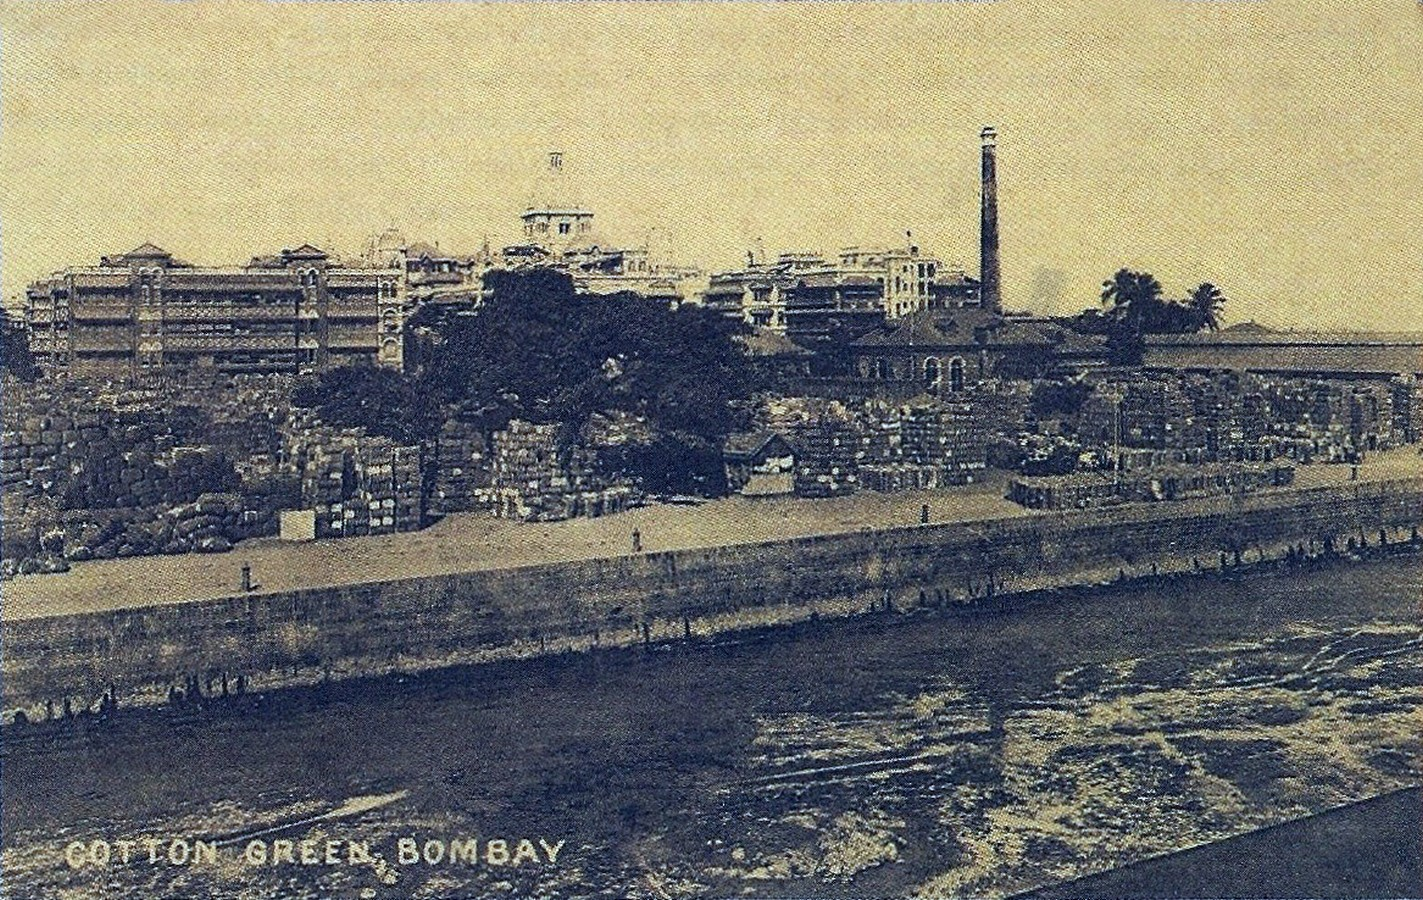 The relevance of 'Mills' in Mumbai throughout history - Sheet1